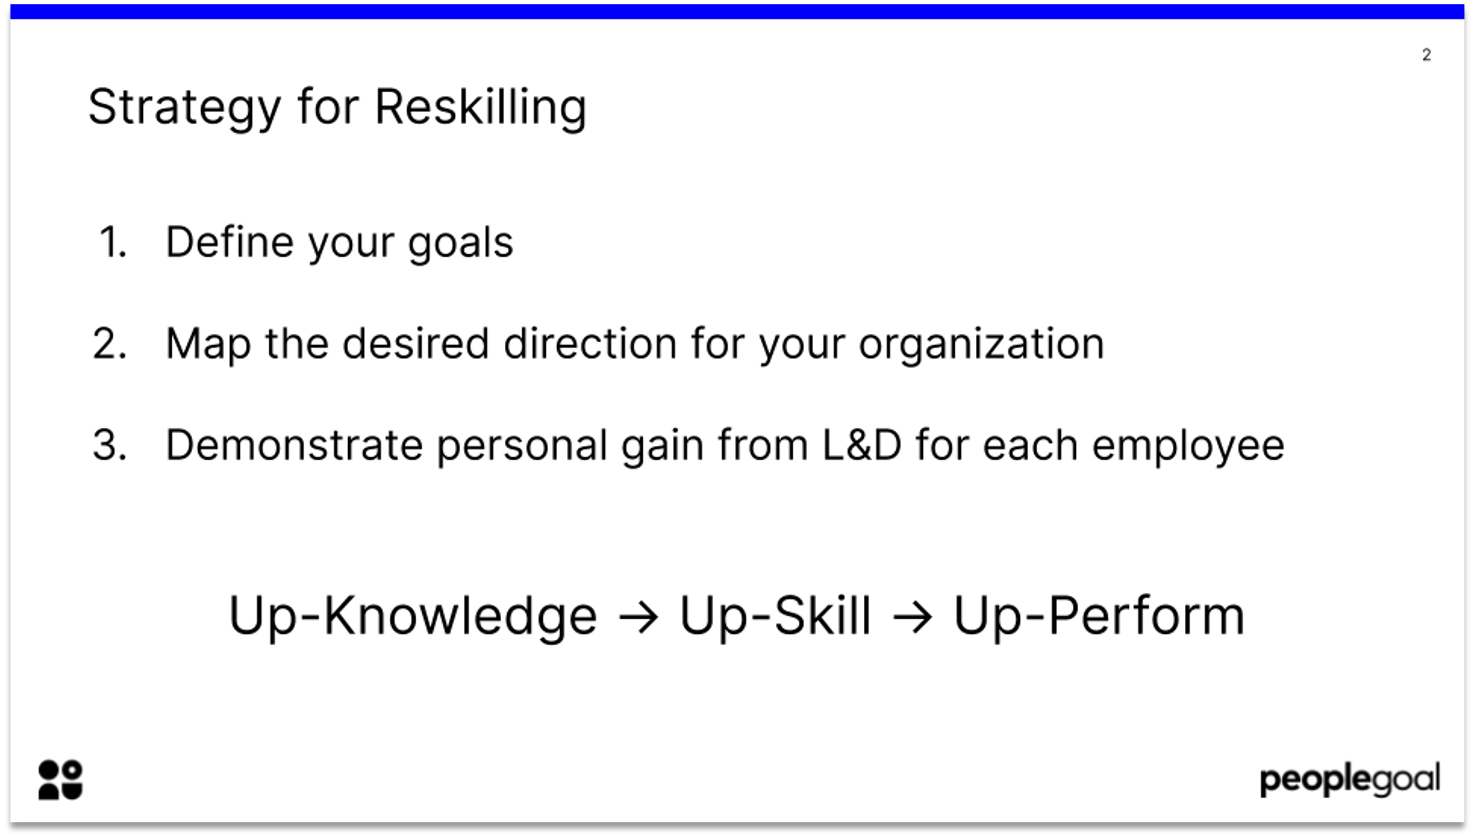 strategy for reskilling